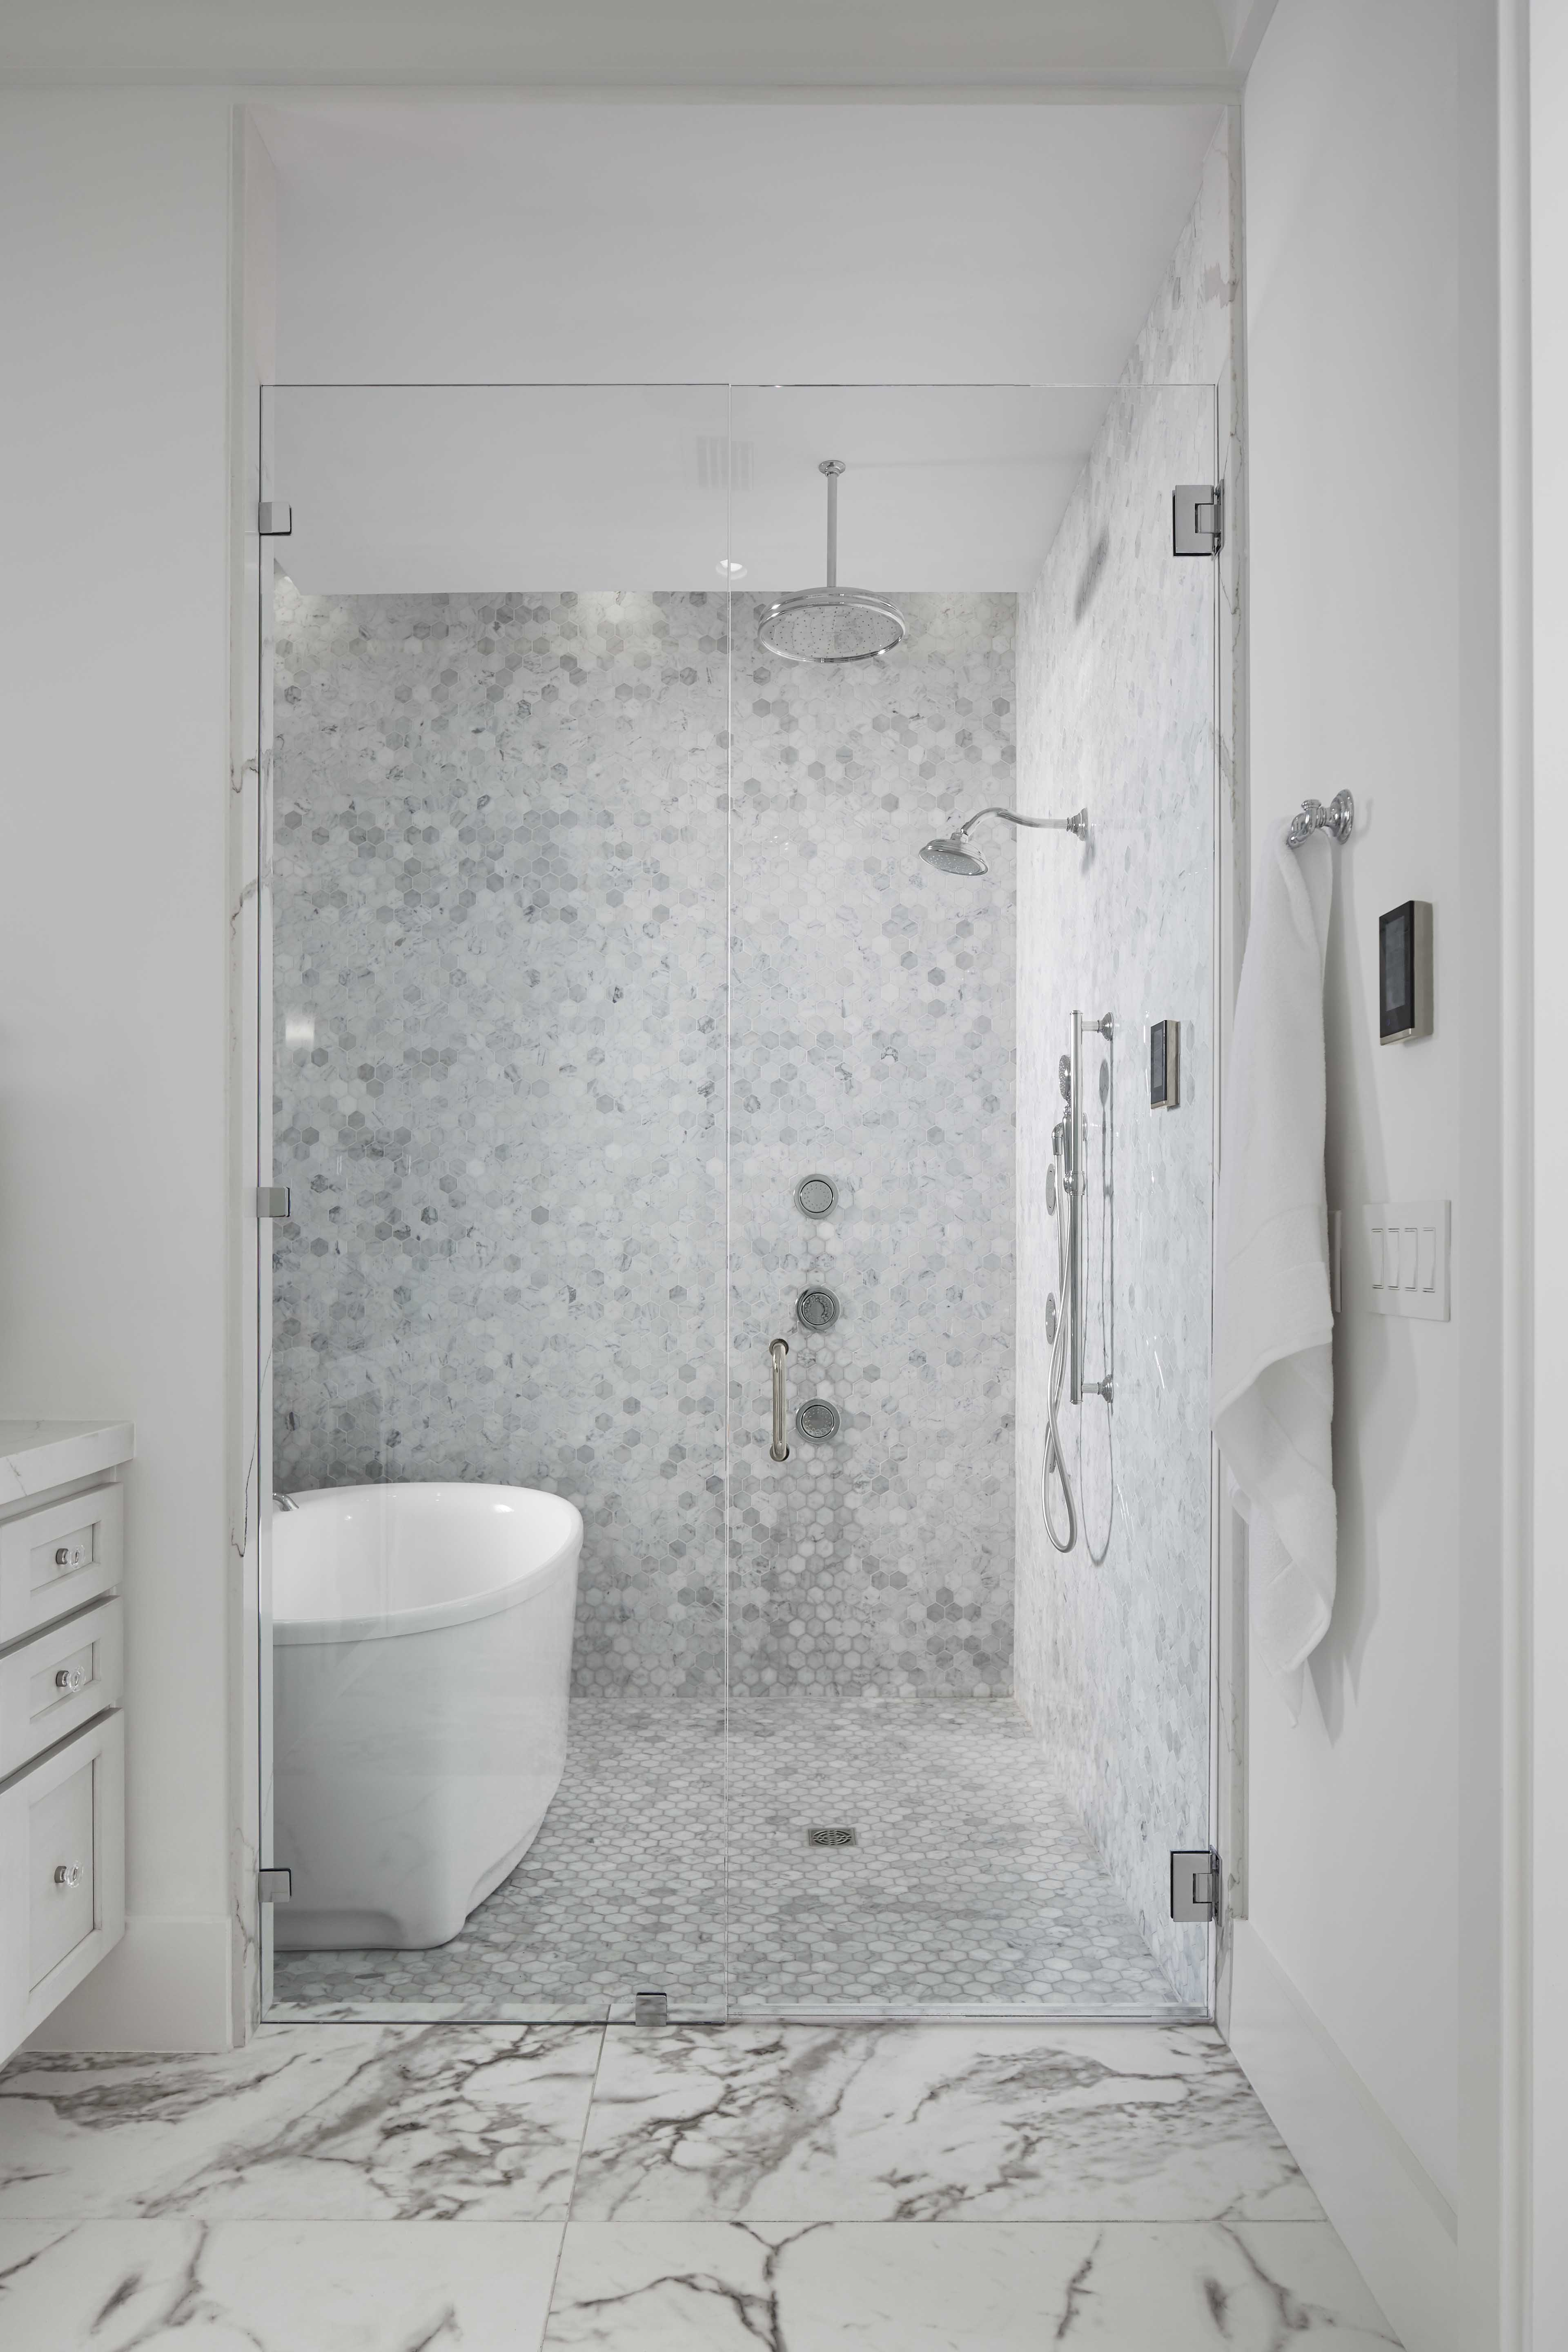 Underscore Freestanding Vibracoustic Bath     WaterTile Bodyspray     Traditional Rainhead     DTV+     Artifacts® showerhead     A growing trend in bathroom design, the master bath features a designated wet space that combines both the bathtub and shower in one enclosed area.